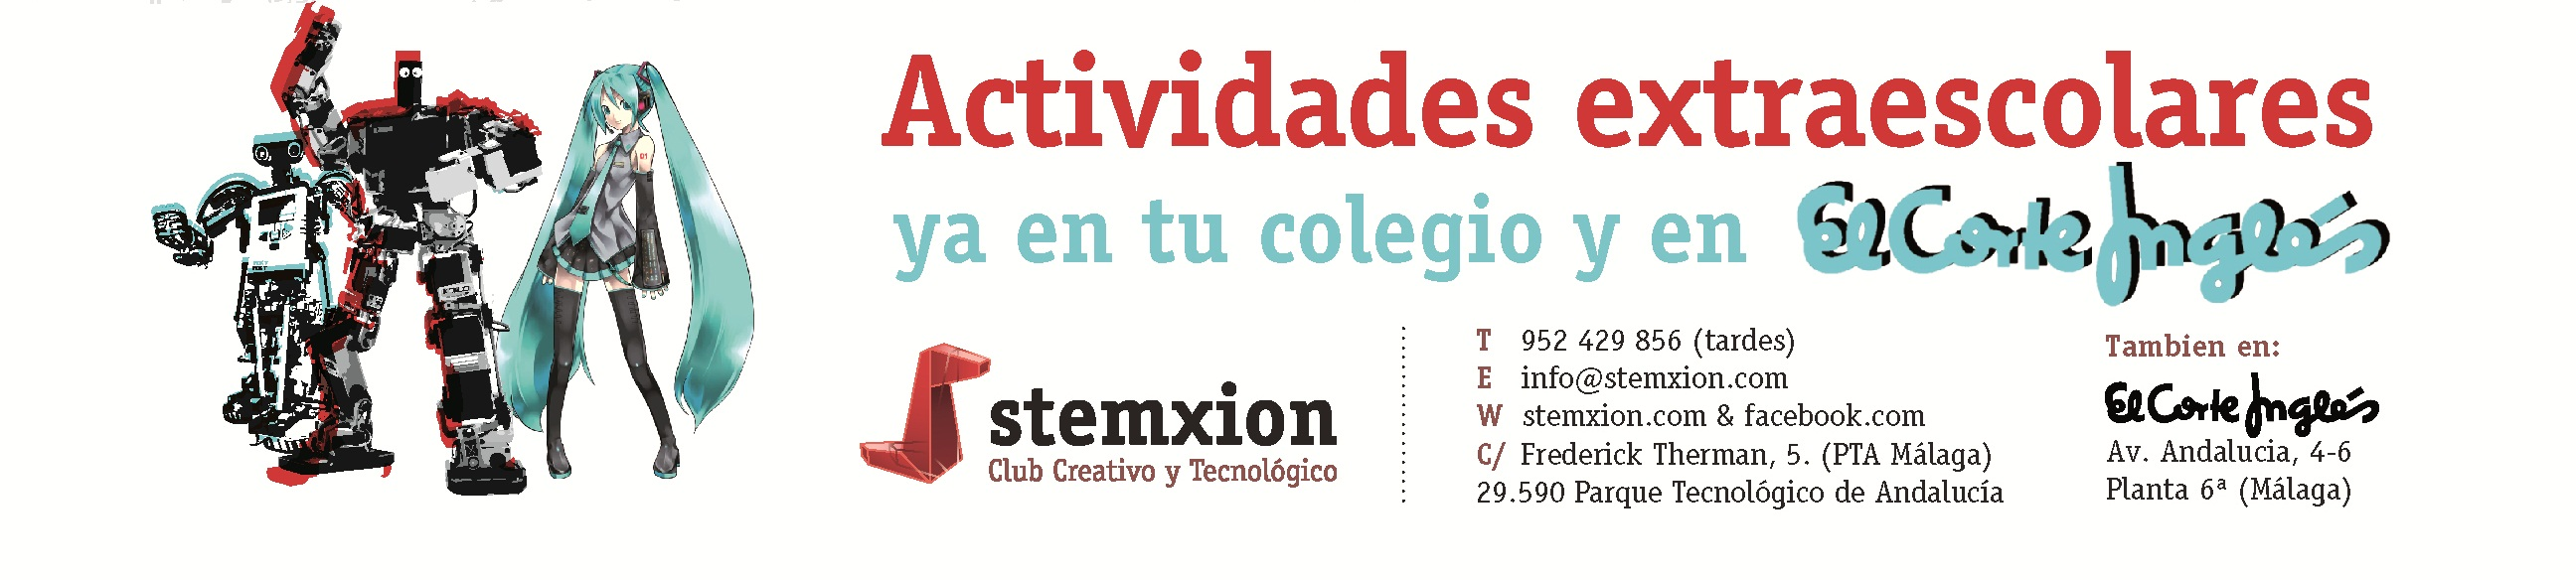 firma stemxion2013